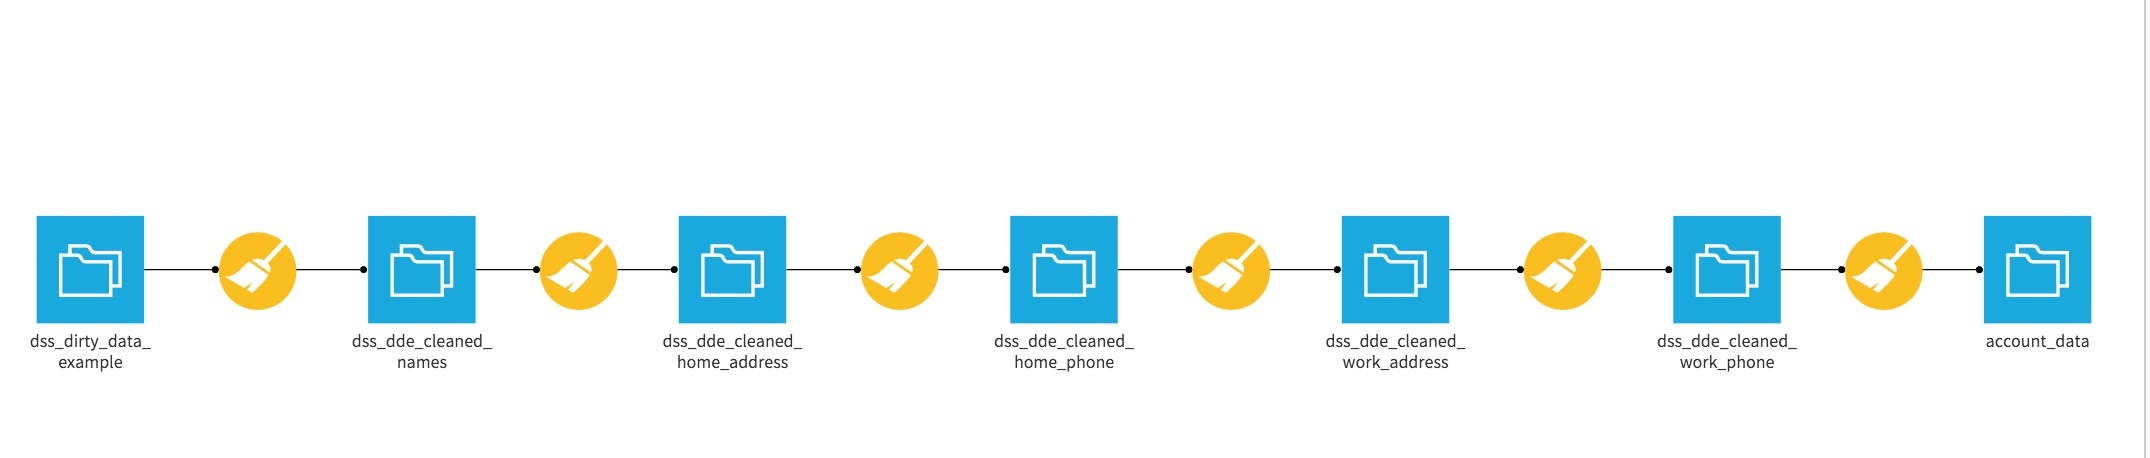 DSS data cleaning pipeline overview